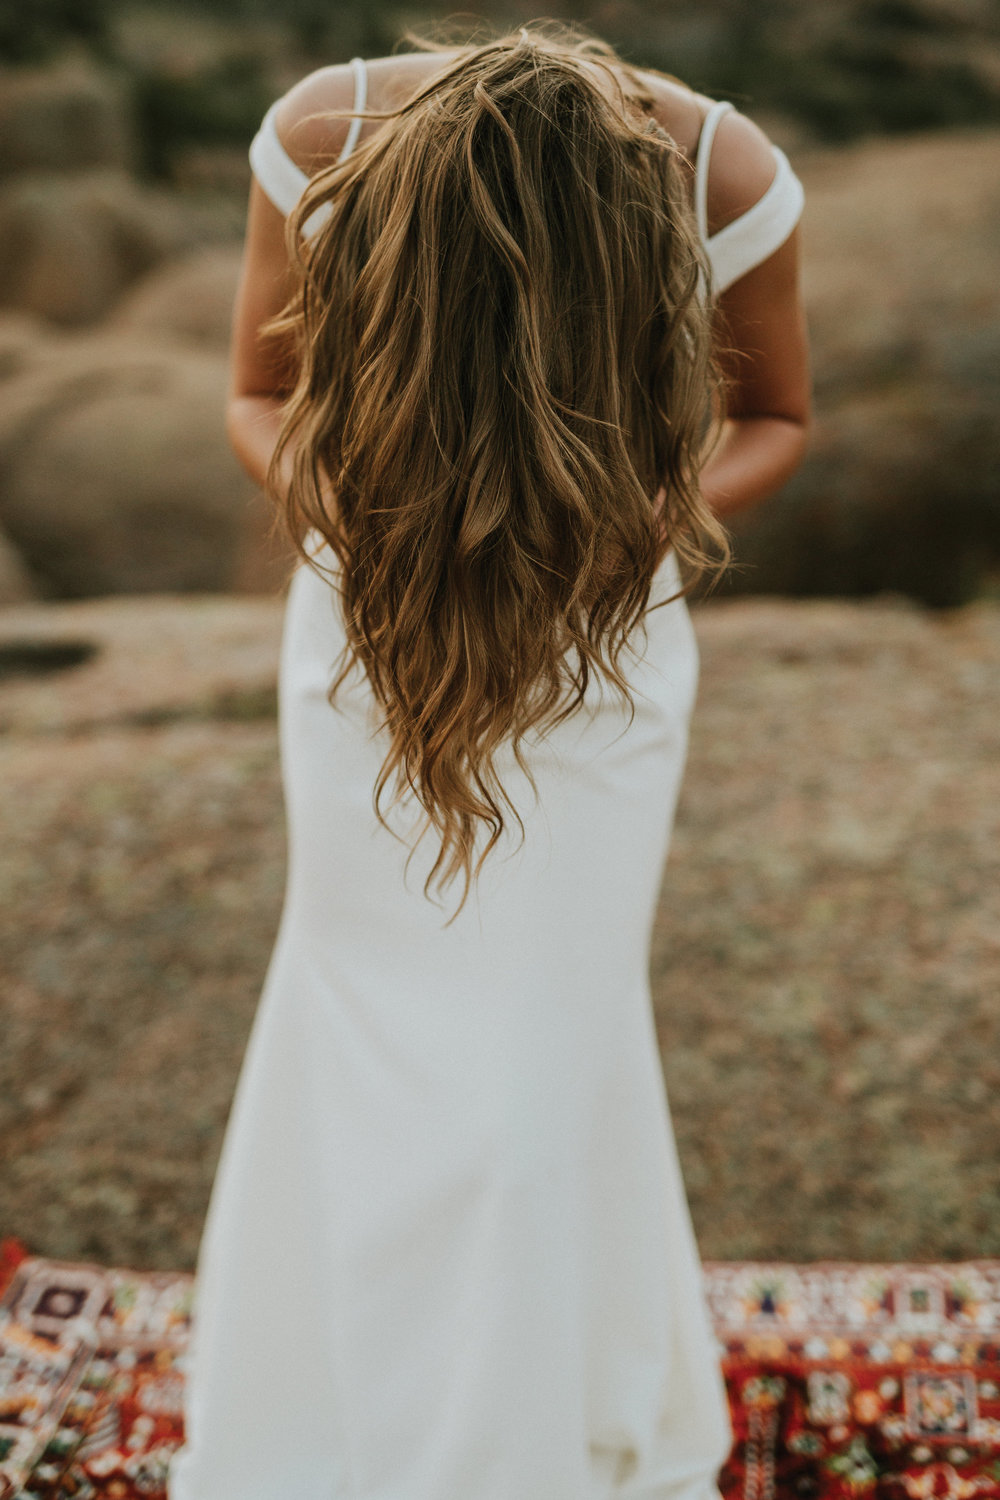 Prescott Bridal | Oklahoma City Wedding Dresses and Gowns - Hailey Faria Styled Shoot